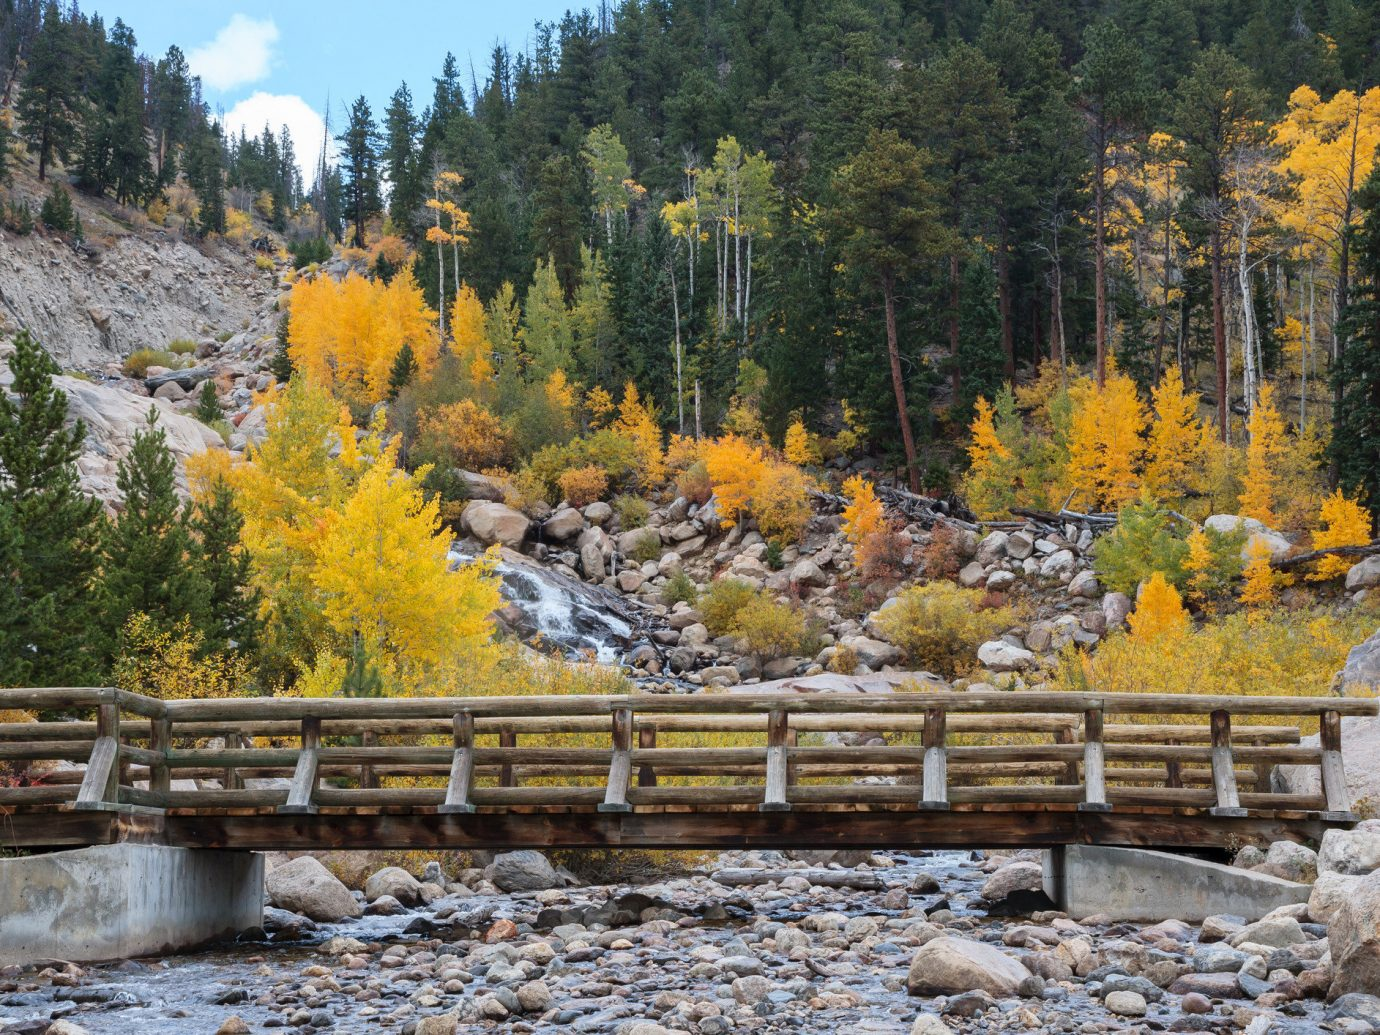 Outdoors + Adventure Road Trips Trip Ideas tree outdoor bench Nature leaf wilderness autumn plant park geological phenomenon water wooden landscape stream larch rock Winter national park watercourse wood mountain state park creek stream bed River Forest wooded stone